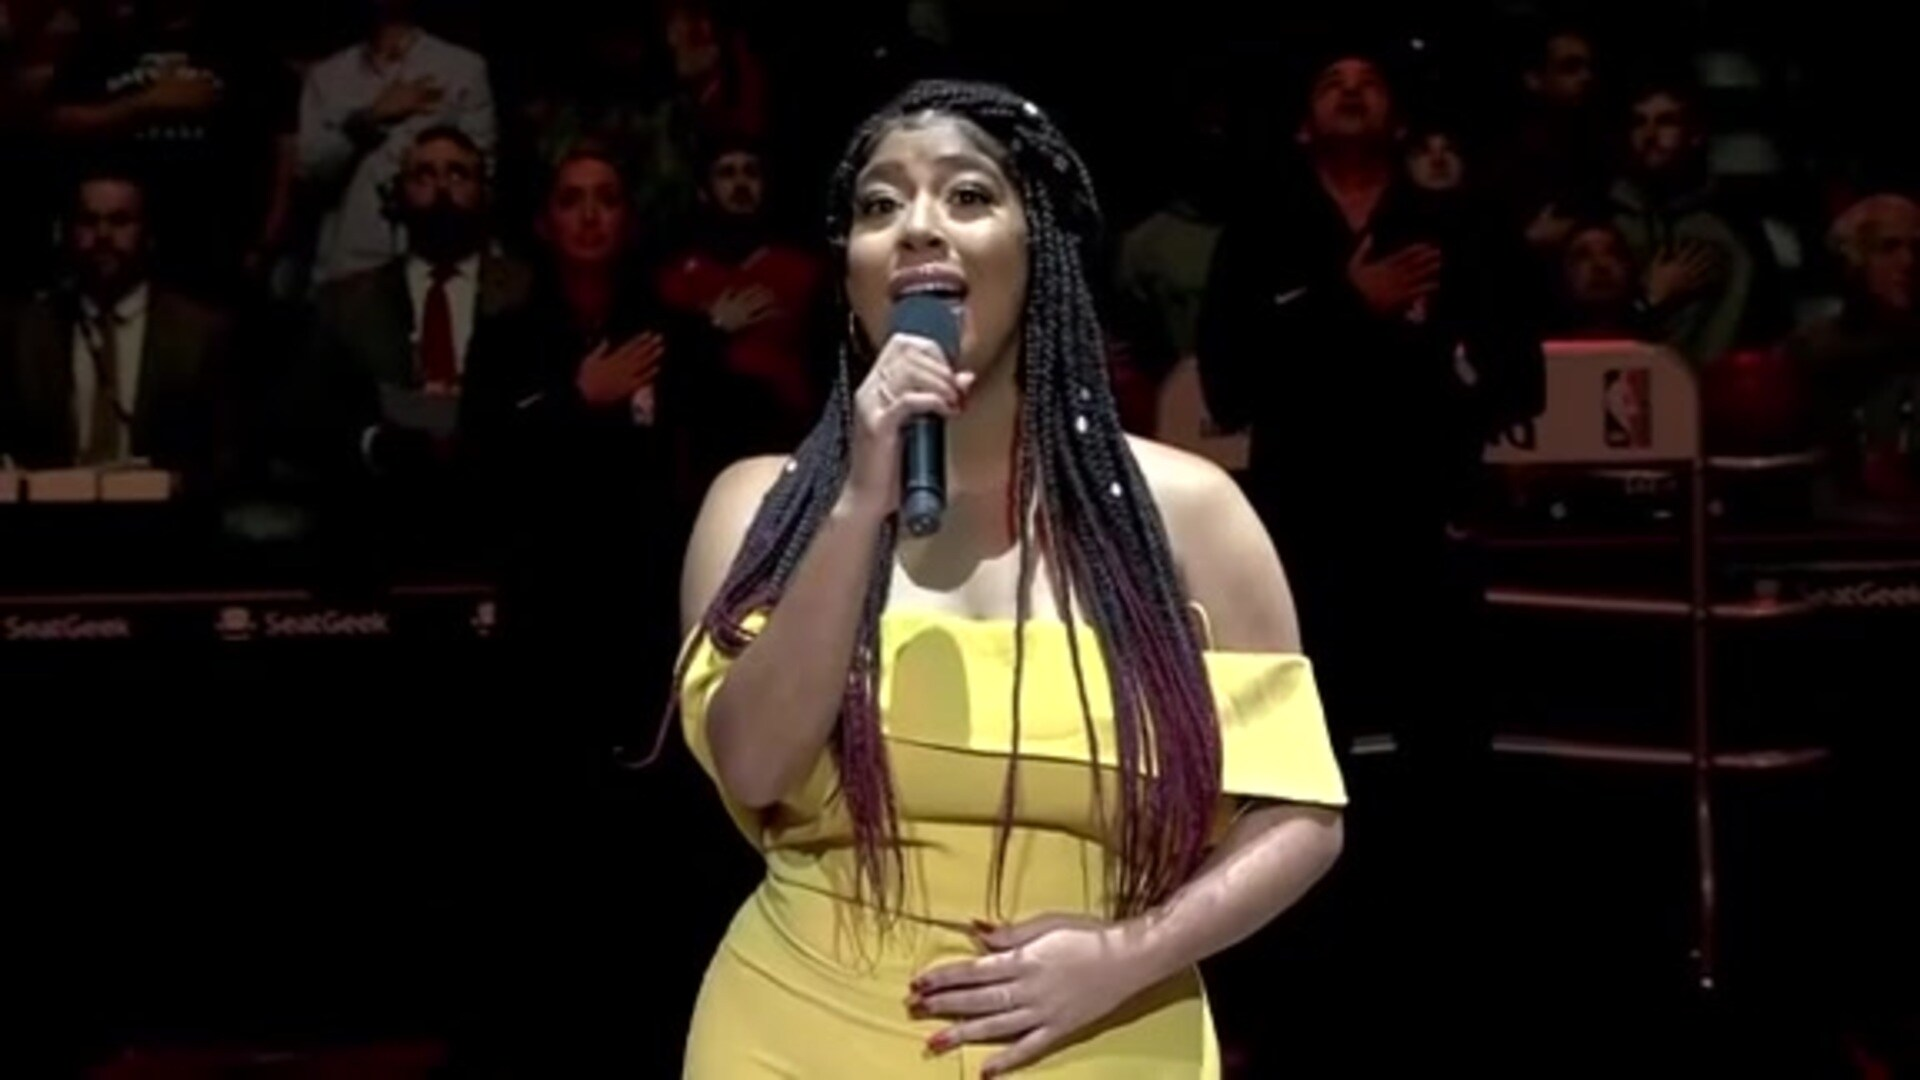 Entertainment: National Anthem performance by Jeidimar Rijos – November 14 vs. L.A. Clippers